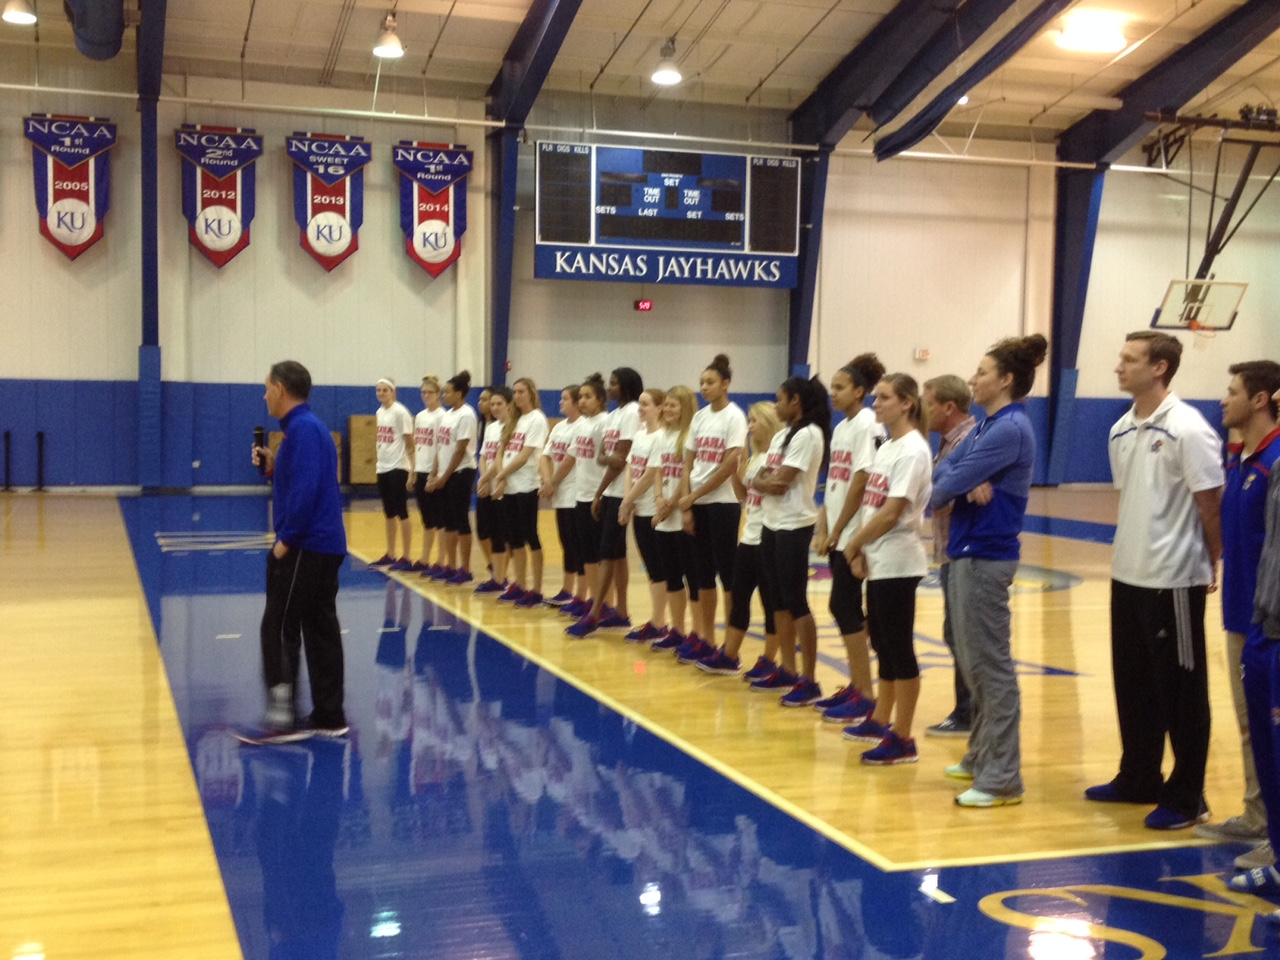 KU Volleyball Coach Ray Bechard and team members address the crowd at Horejsi Family Athletics Center, following weekend wins at NCAA tournament in San Diego. (Photo by J. Schafer)